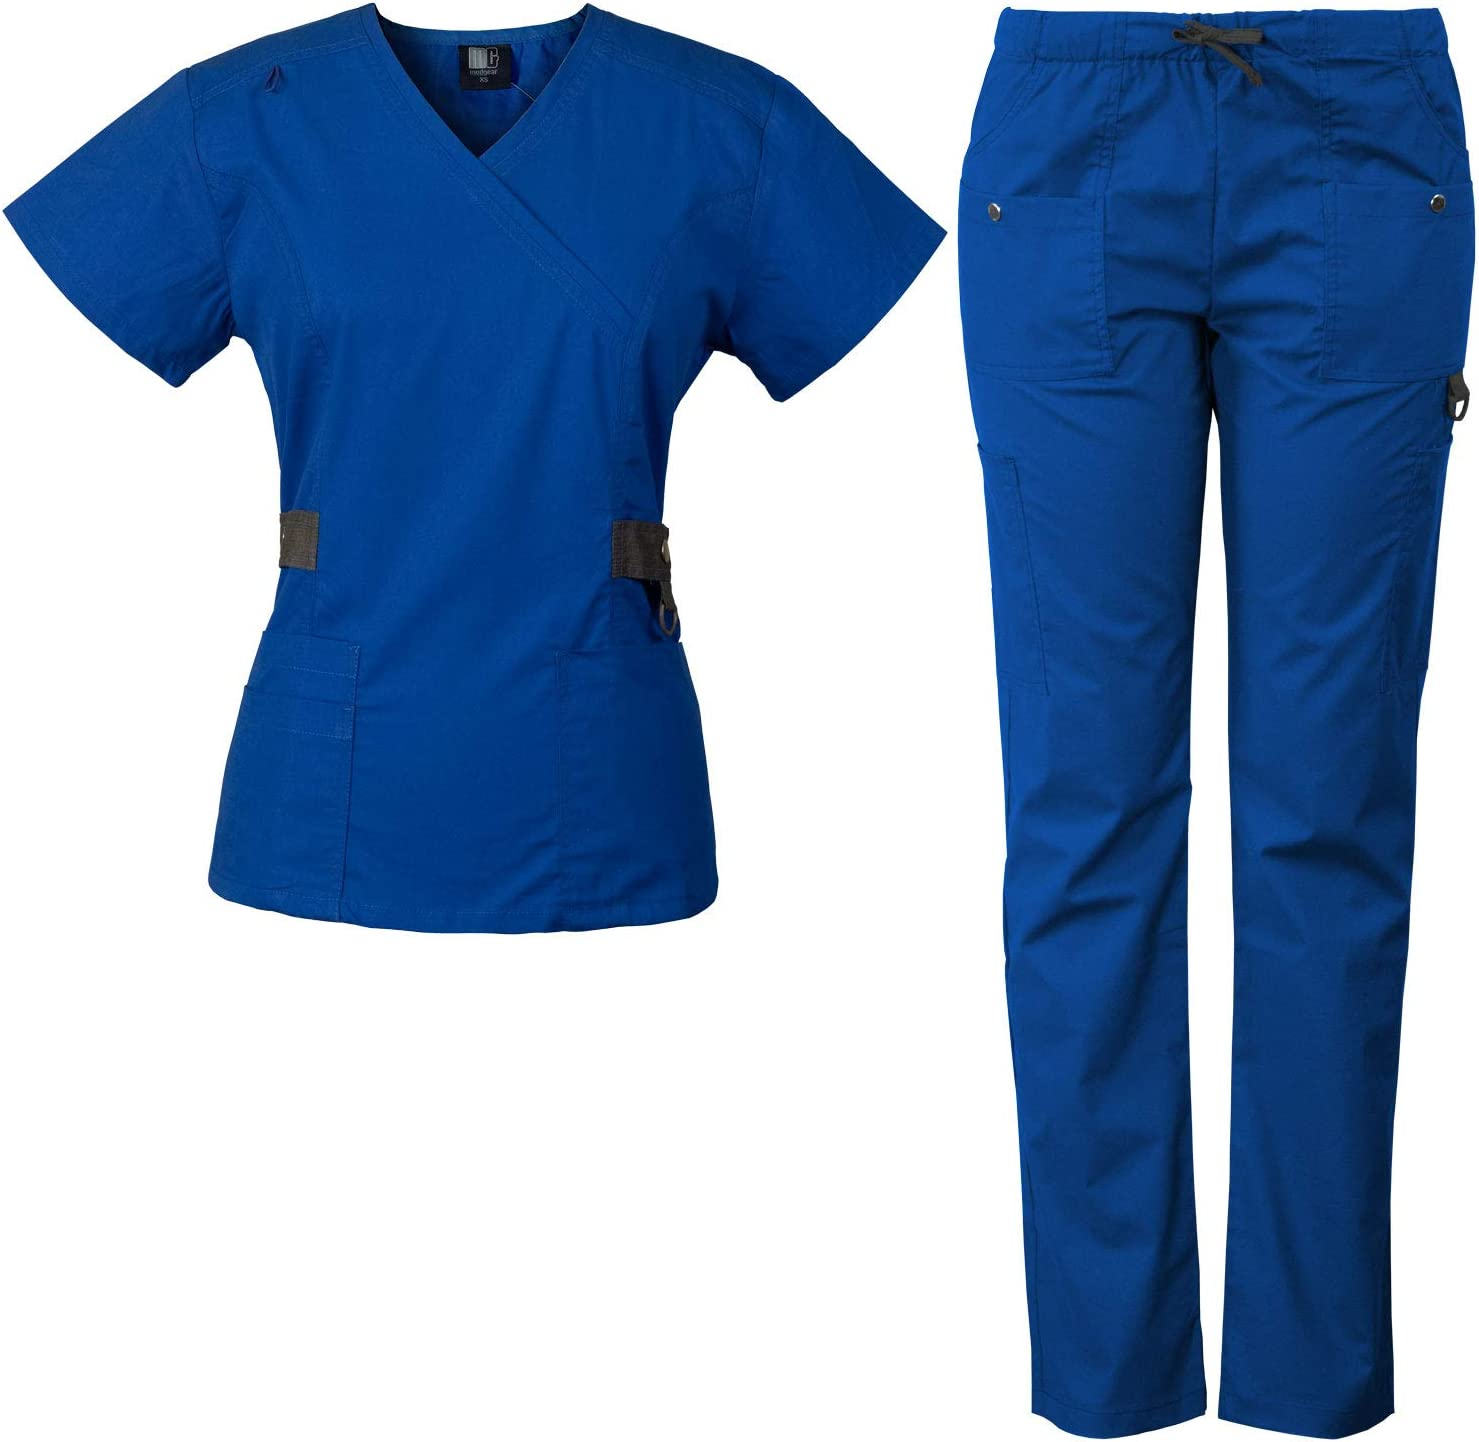 Luxury Max 45% OFF Medgear 12-Pocket Women's Scrub Set Silver Snap Co with Detail